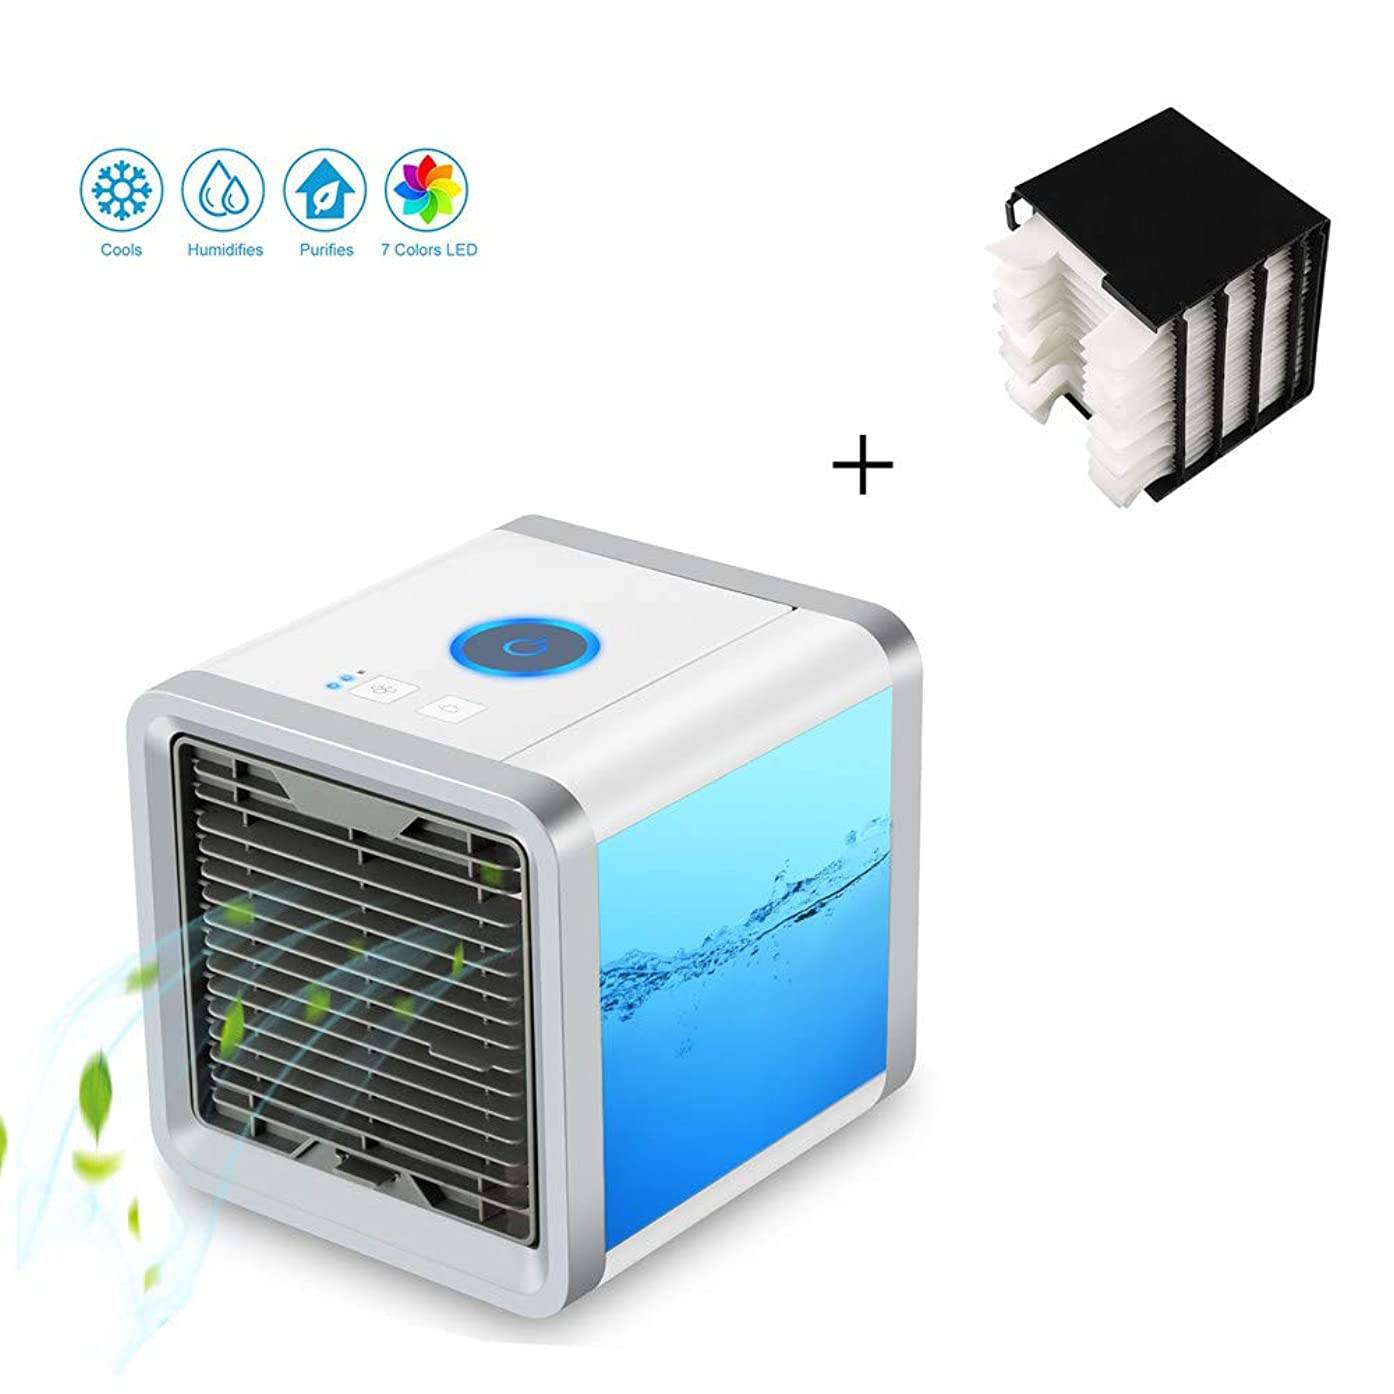 MSG ZY Portable Air Conditioner Fan, Mini Personal Evaporative Air Cooler Fan Misting Cooler Desk Humidifier Fan for Office Dorm,A